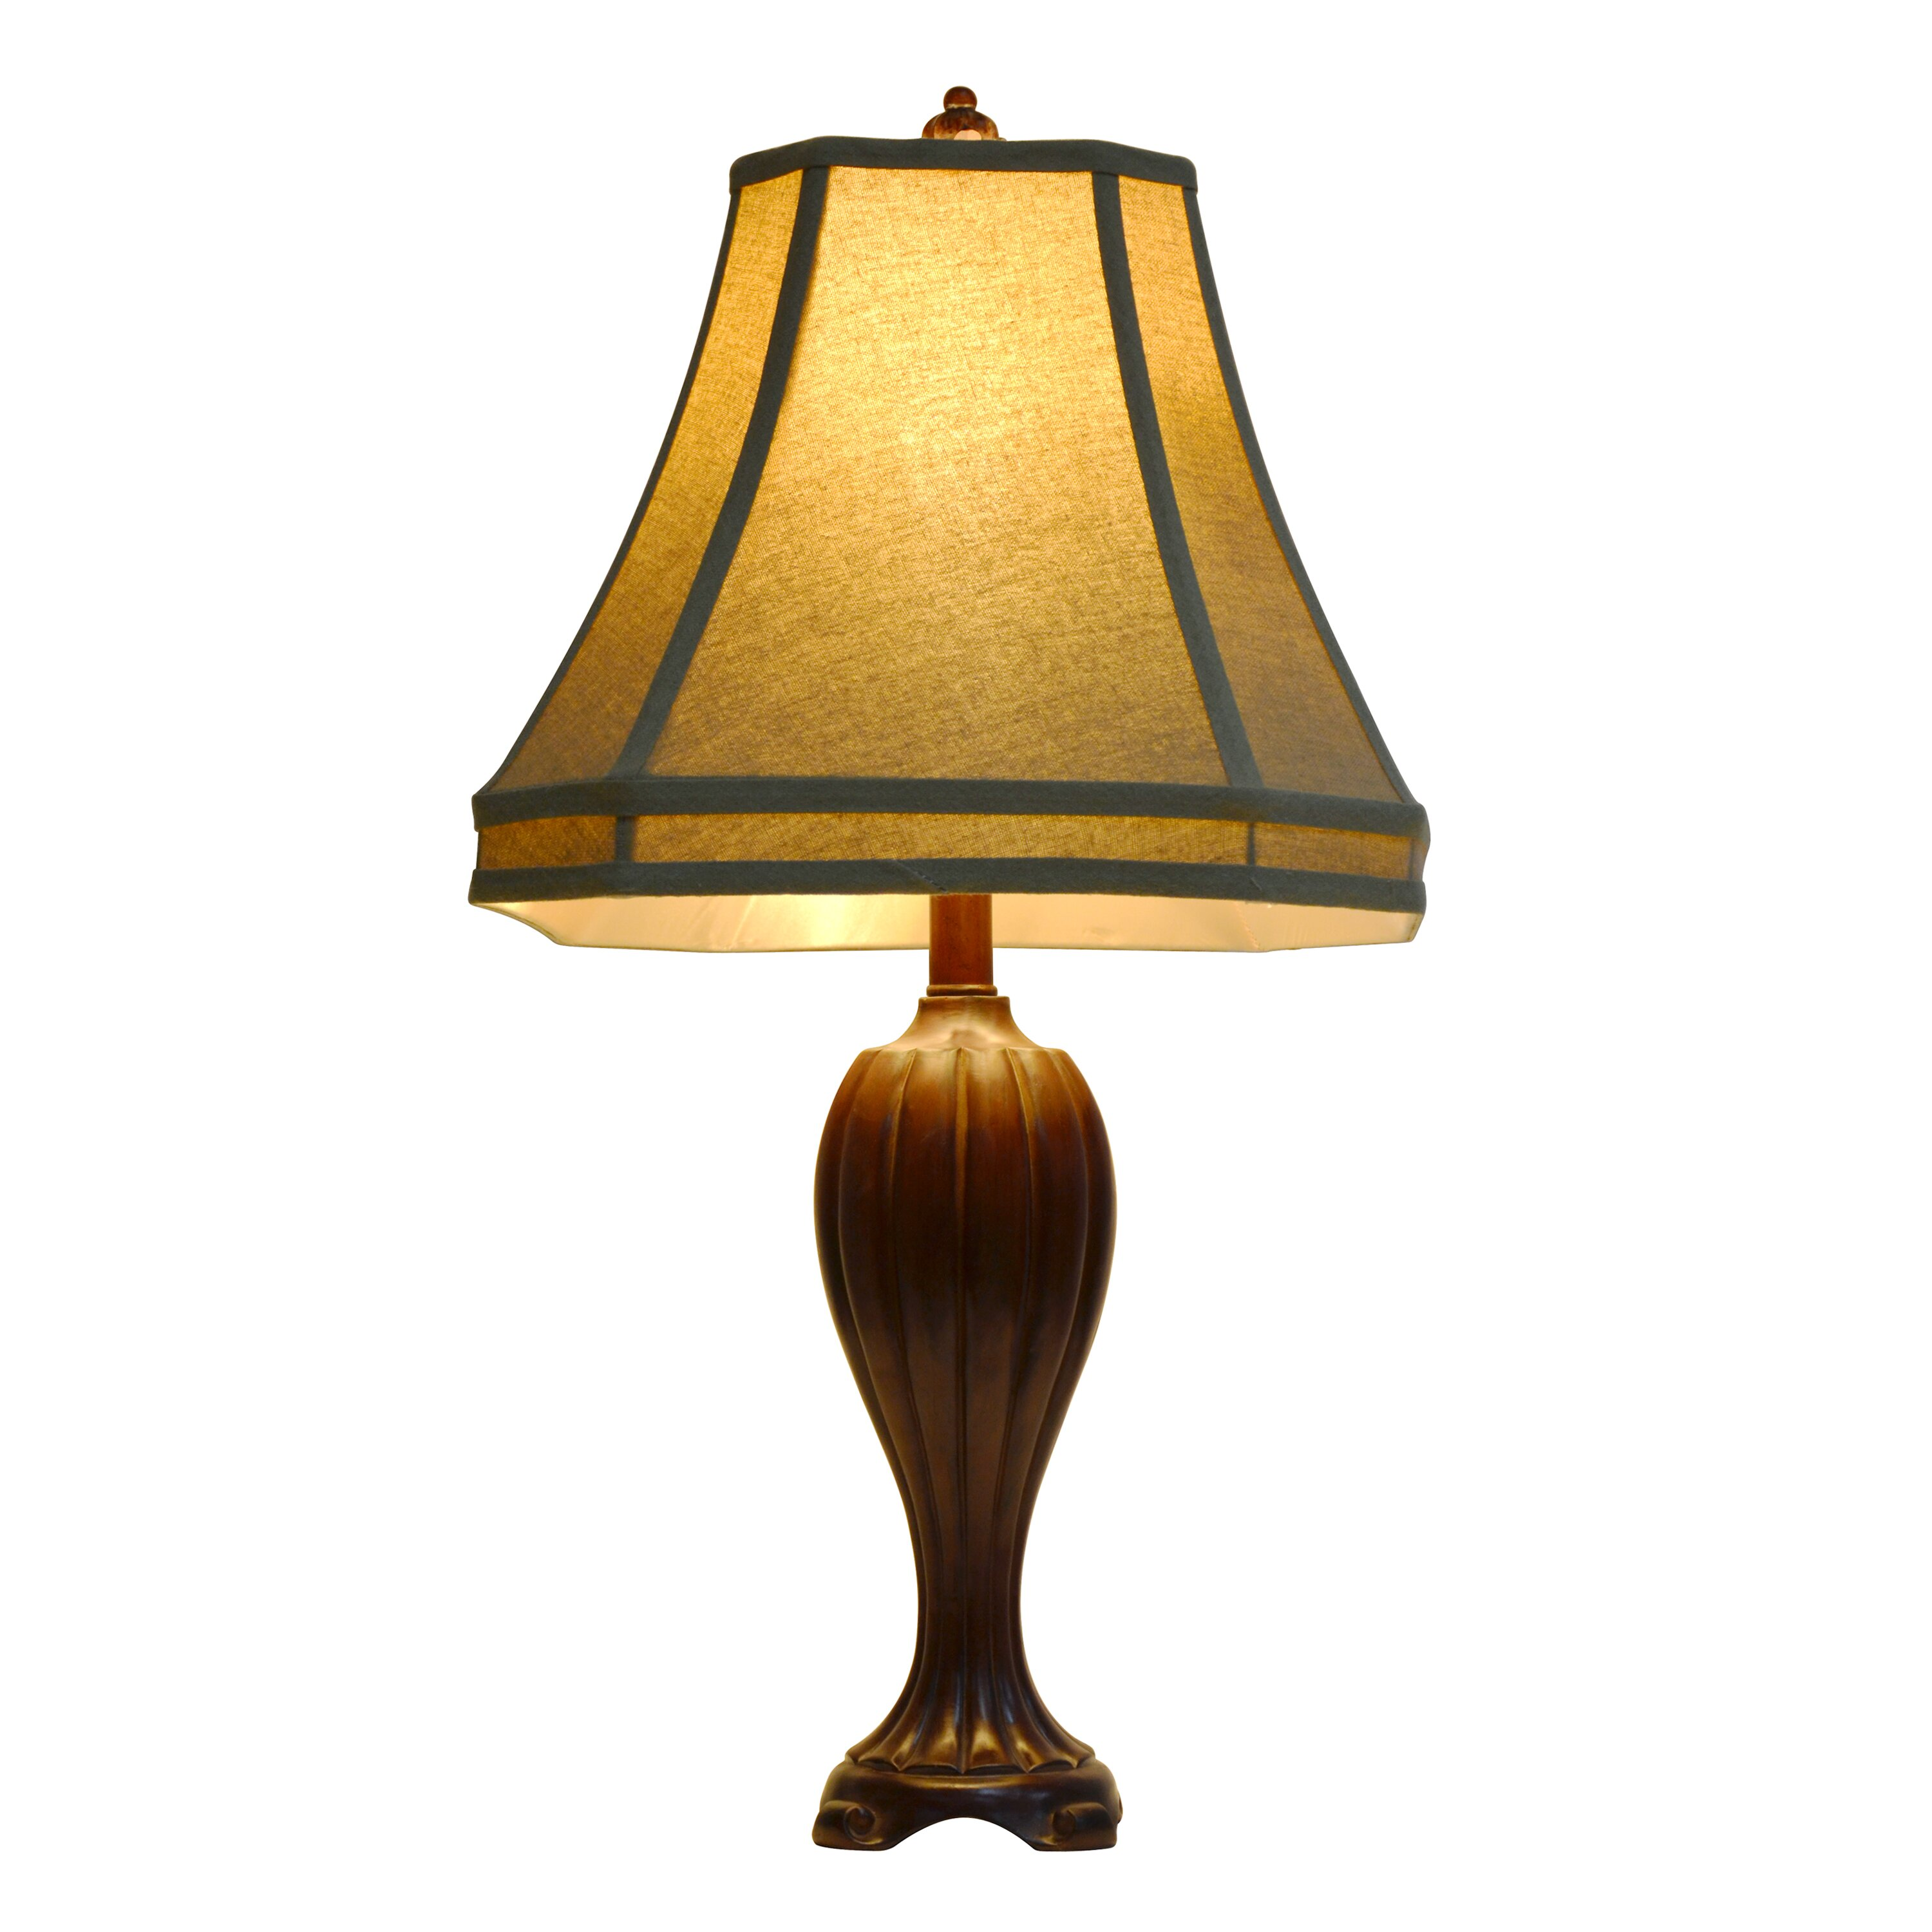 Decor therapy 27 5 table lamp reviews wayfair for Decor therapy